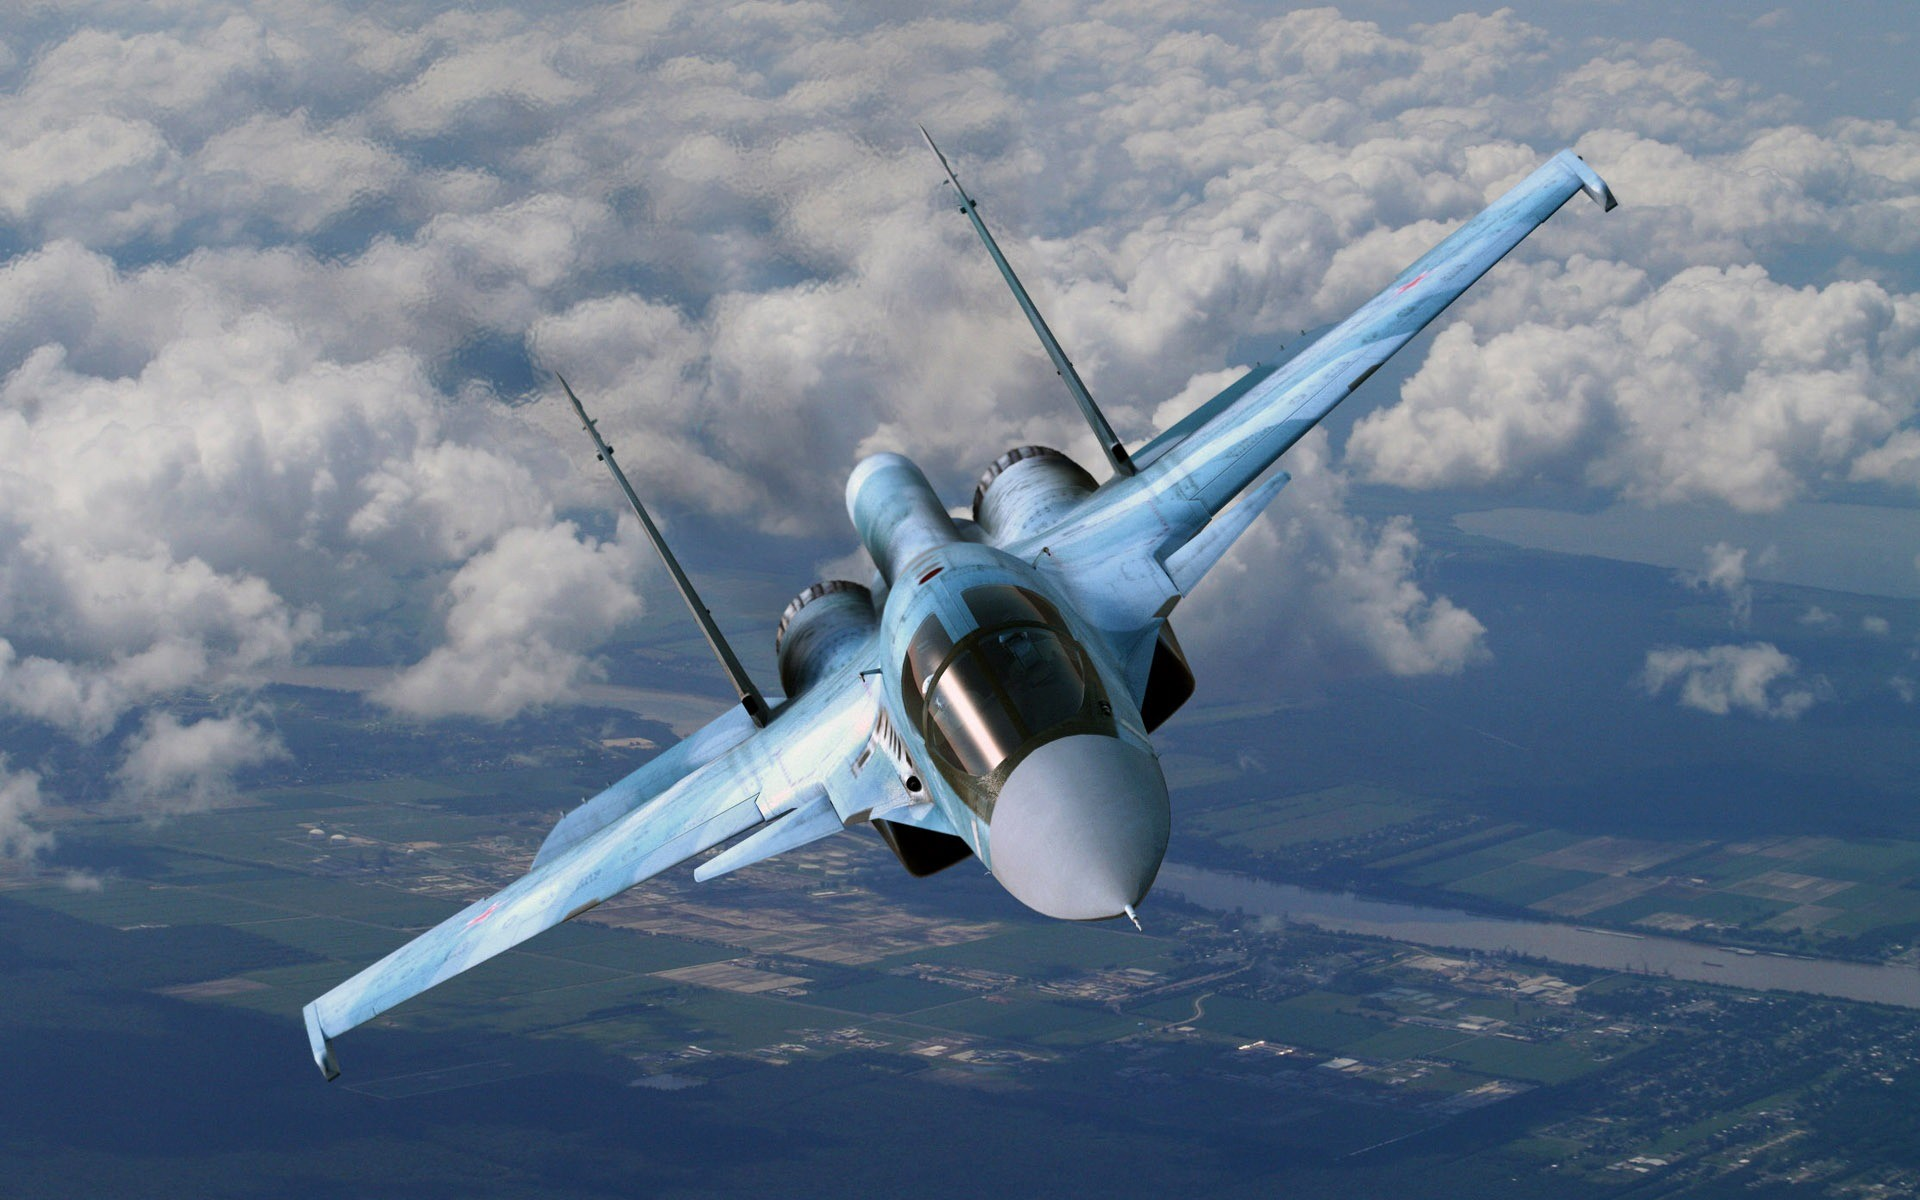 Military aircraft wallpapers 65 images - Jet wallpaper ...